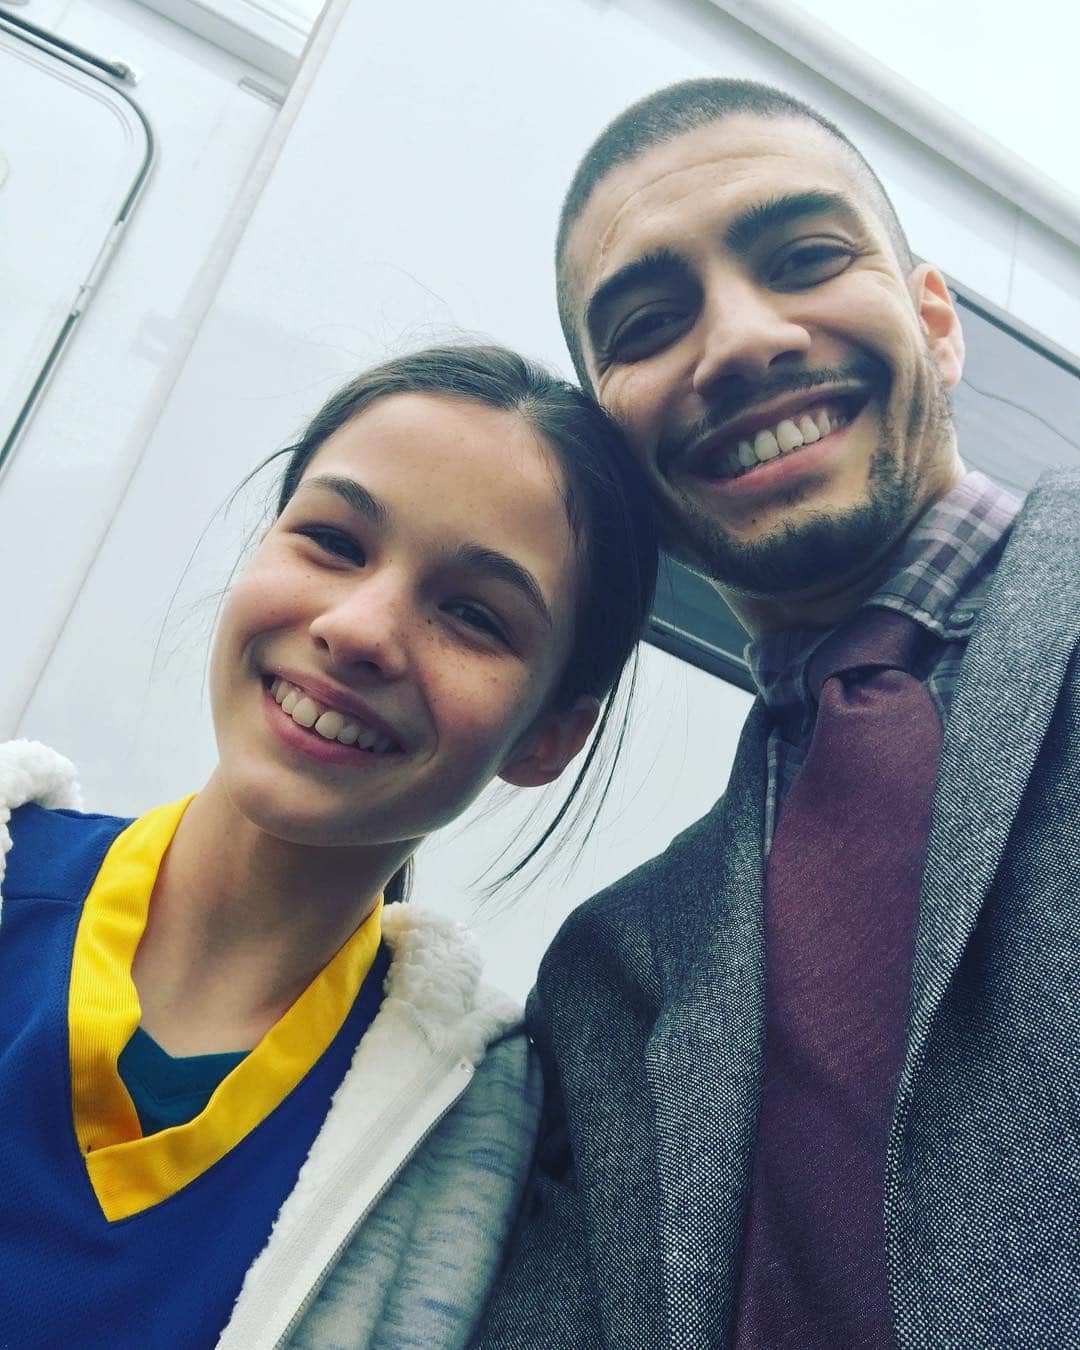 On 'Arrow' Rick's Rene is father to young Zoe Ramirez (Instagram)